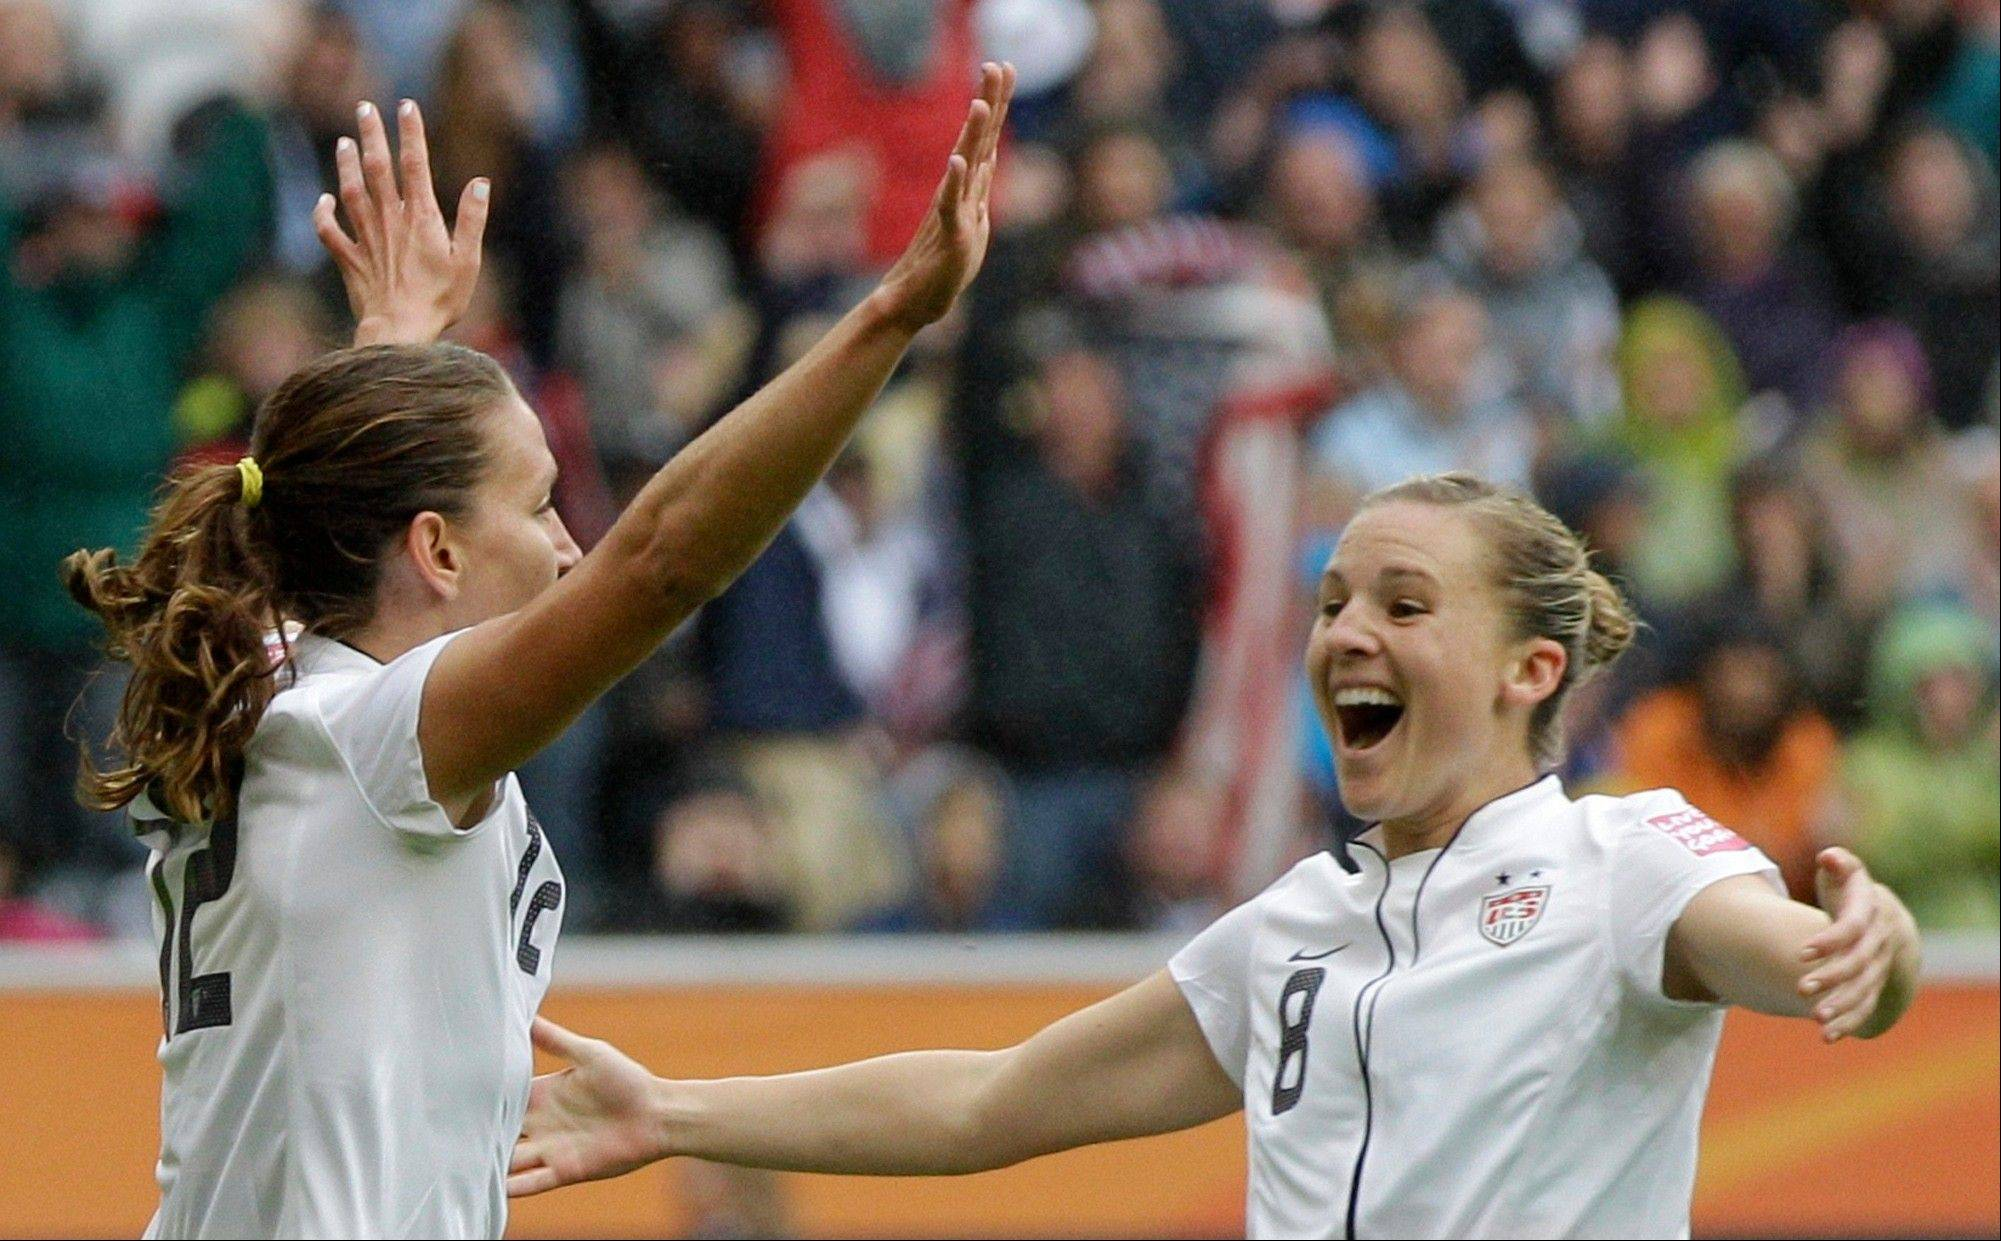 Thank you, U.S. Women's soccer team, for breaking up a really boring summer of sports with your semi-final win in the Women's Soccer World Cup in Germany.